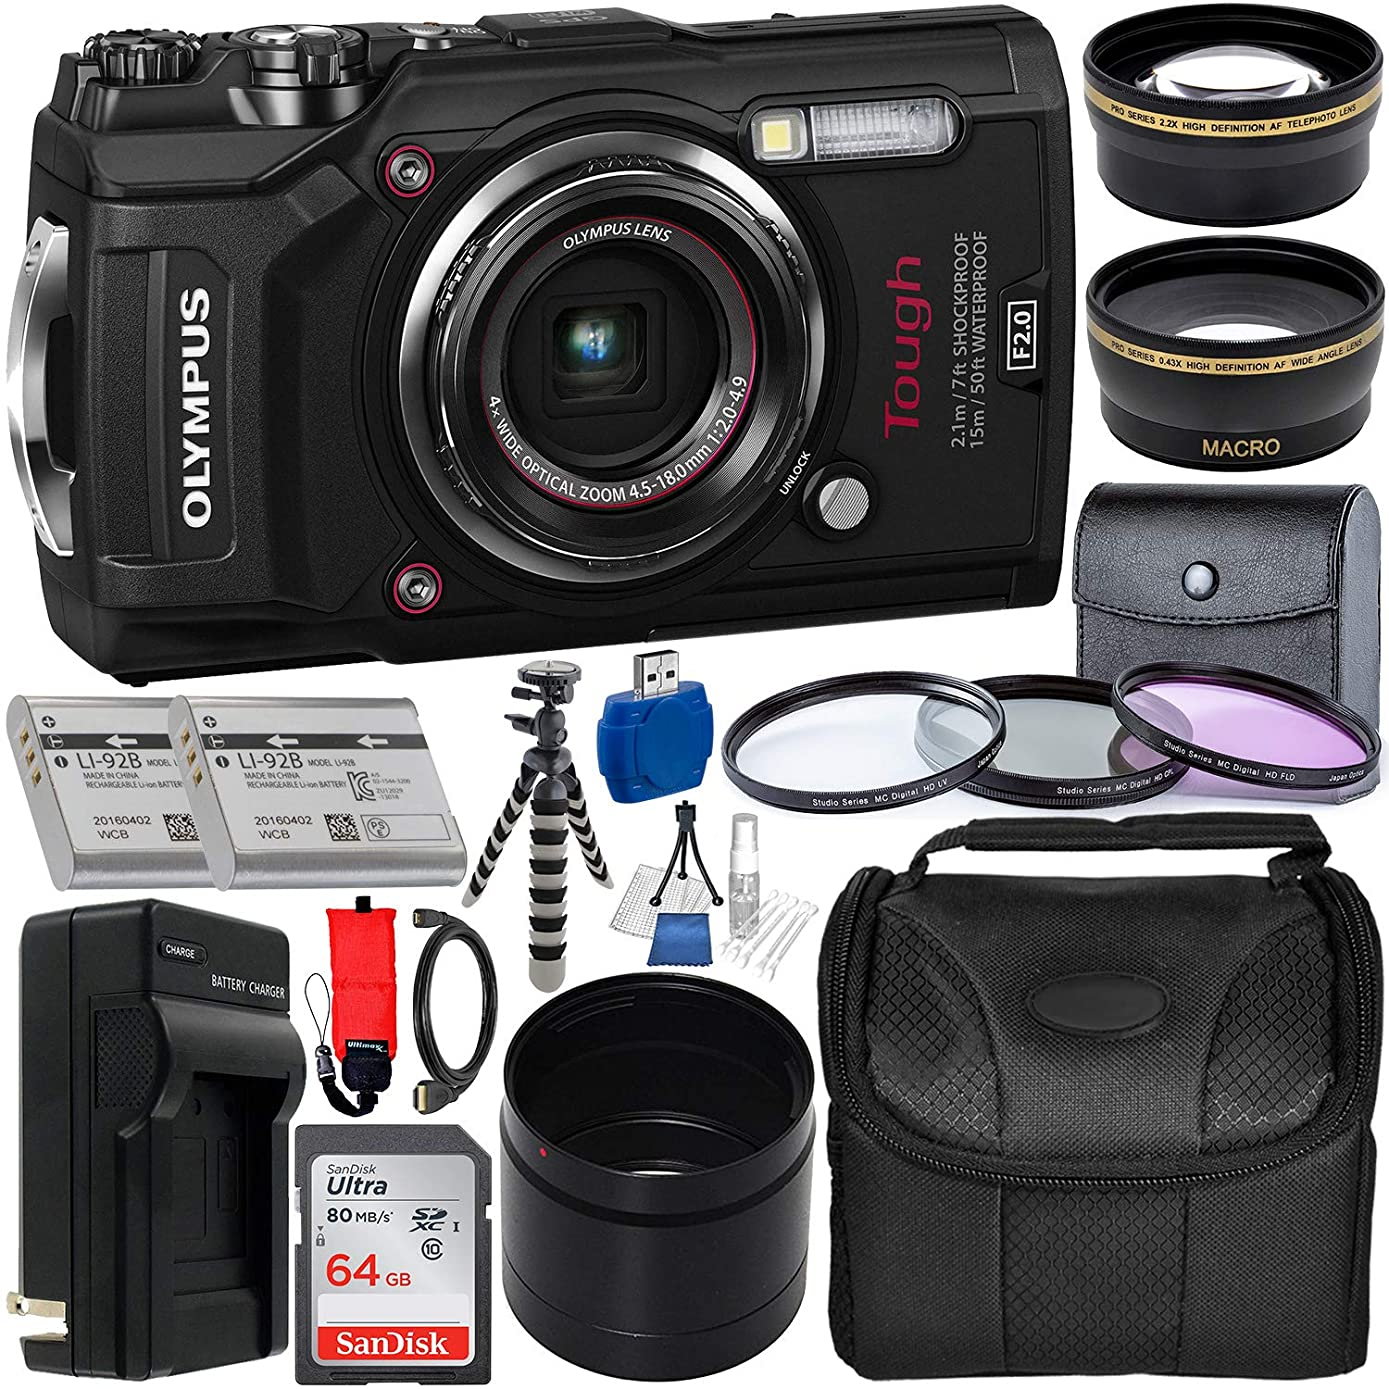 Olympus Tough TG-5 Digital Camera (Black) with Deluxe Accessory Bundle – Includes: SanDisk Ultra 64GB SDXC Memory Card, 2X Spare Batteries with Charger, Flexible Gripster Tripod, Adapter Tube & More